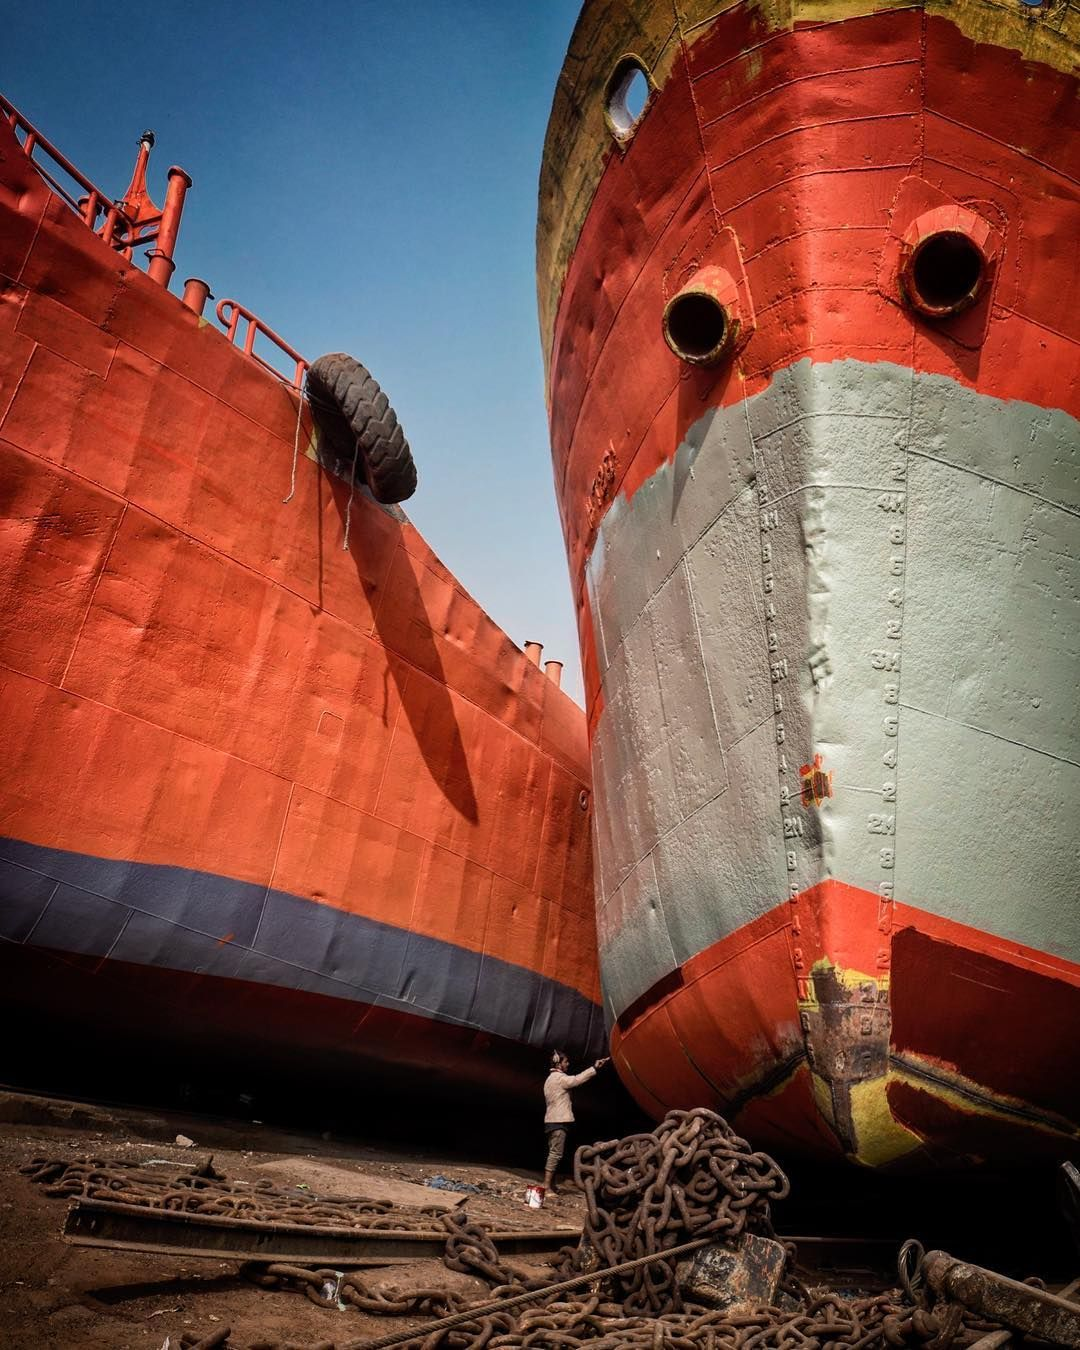 Joshua A Buana On Instagram Another Hard Day In Dhaka A Local Labour Repainting The Old Rustic Ship Dhaka Shipyard Bangladesh Dhaka Bangladesh Old Things